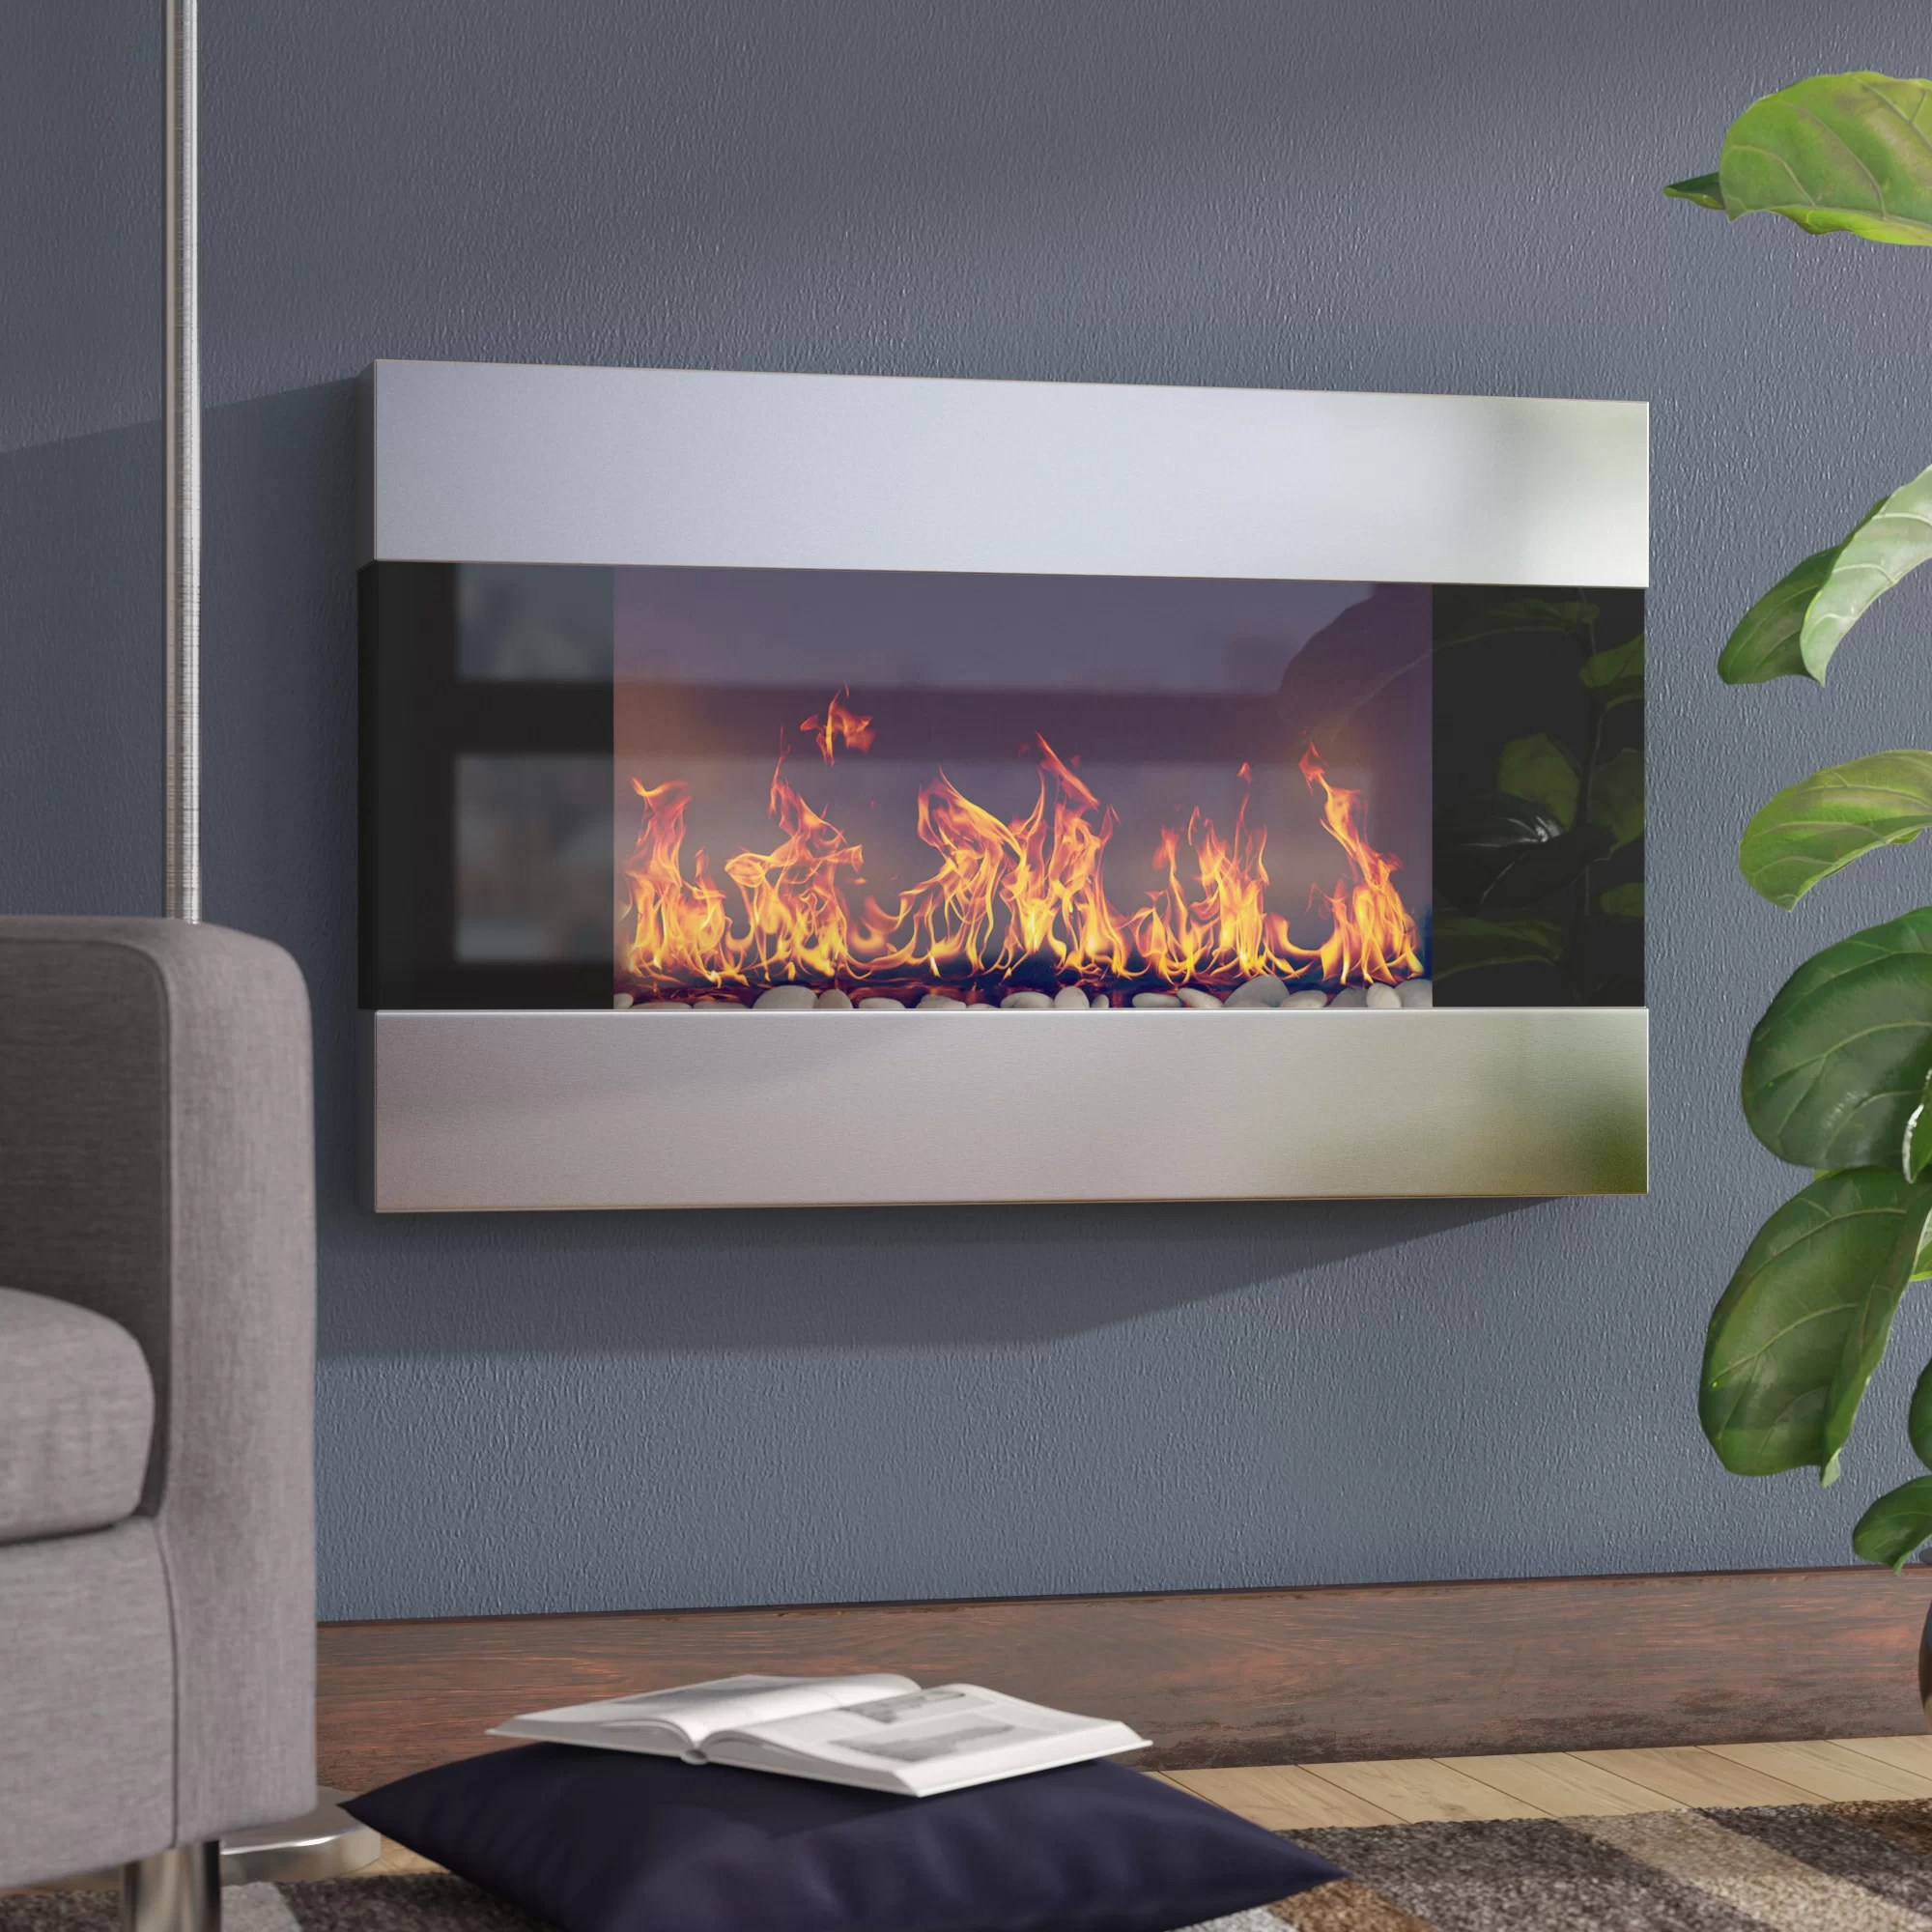 Gas Vs Electric Fireplace Pros And Cons Clairevale Wall Mounted Electric Fireplace